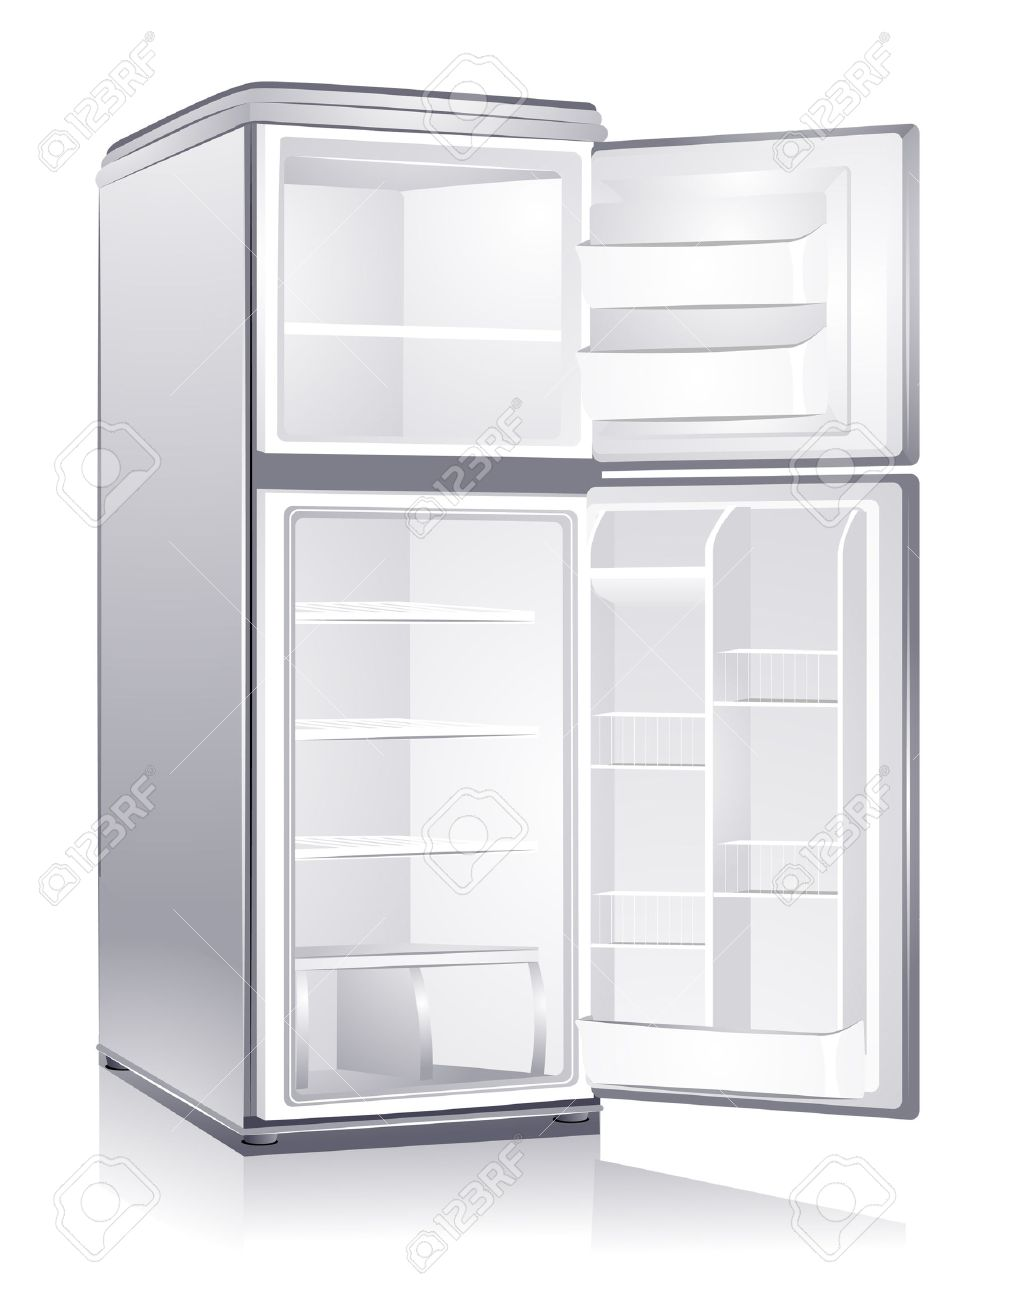 Empty Refrigerator with Clipping Path.